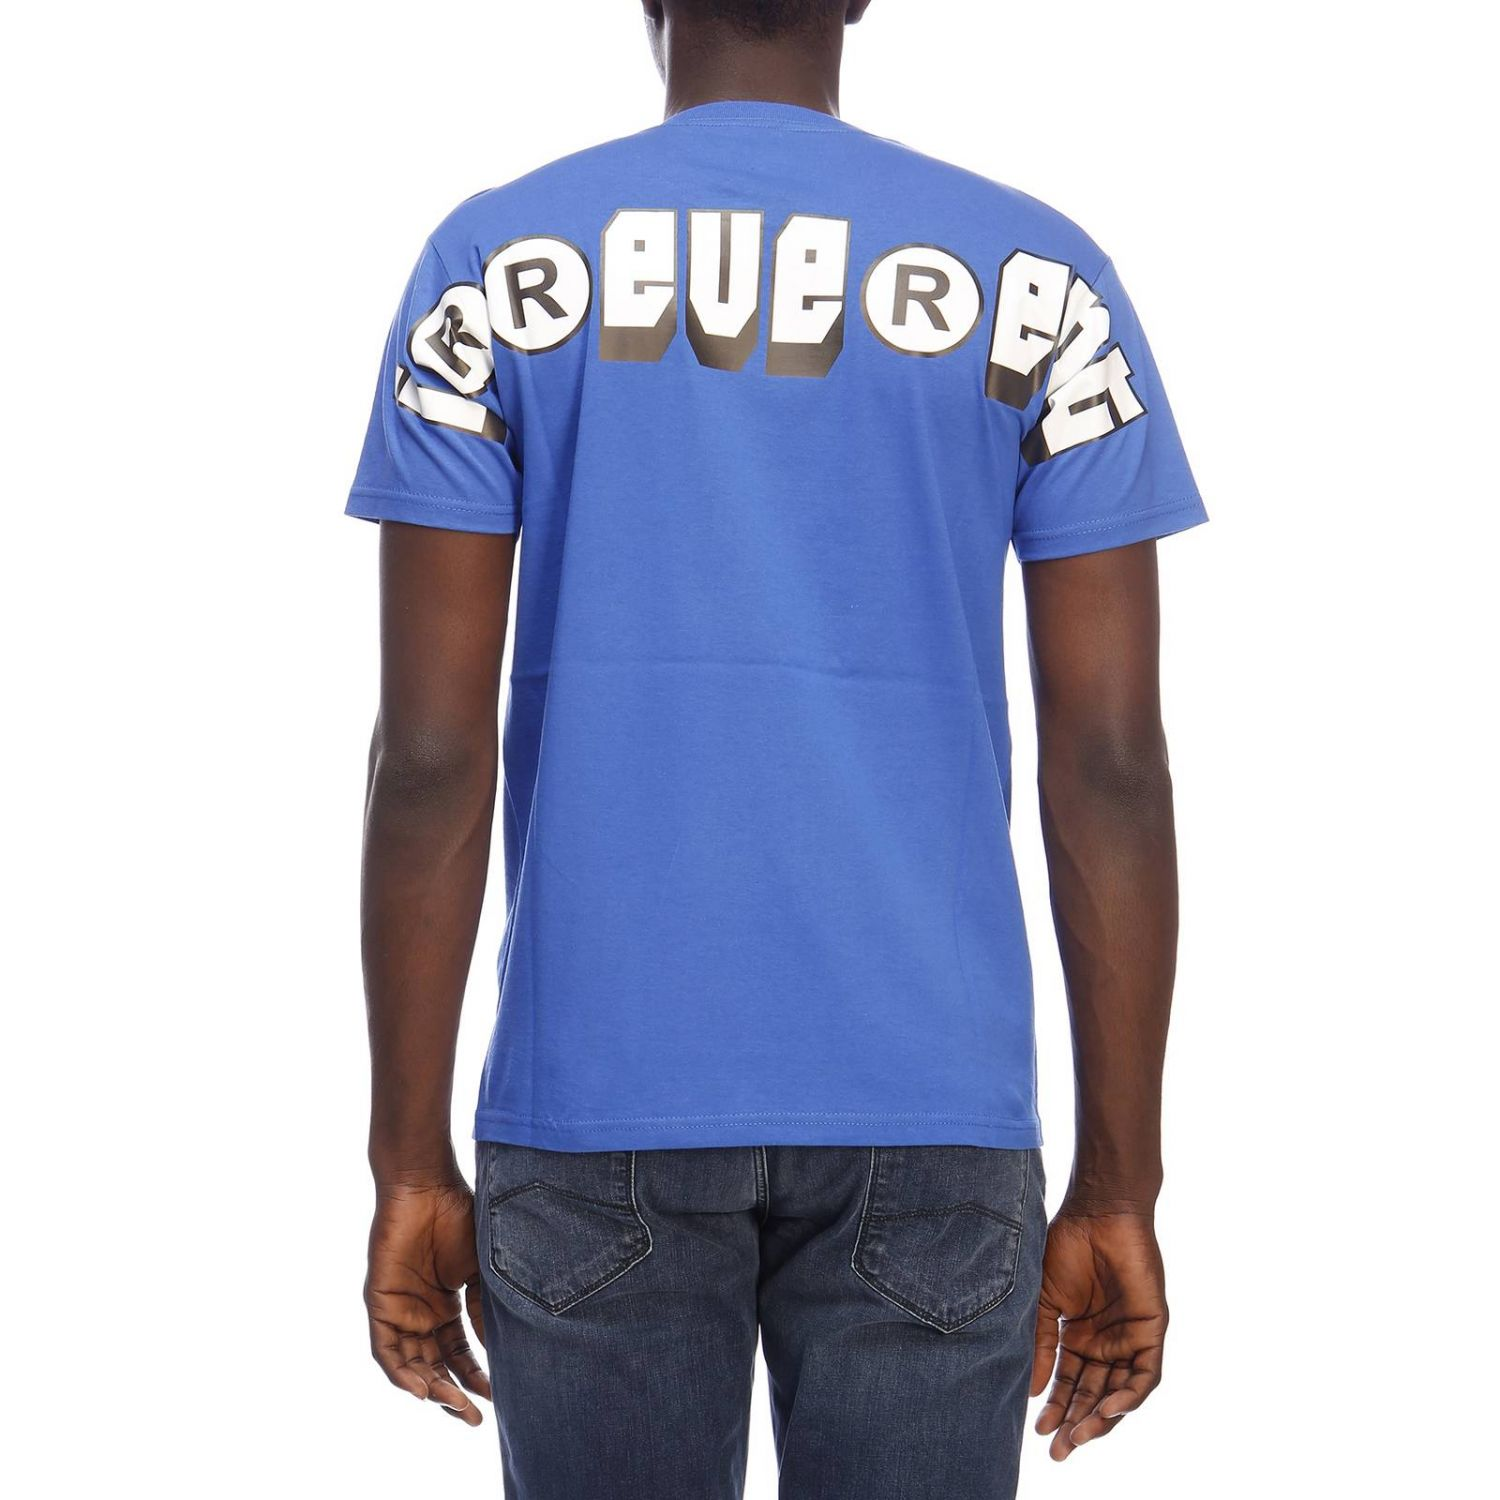 T-shirt homme Sold Out bleu royal 3